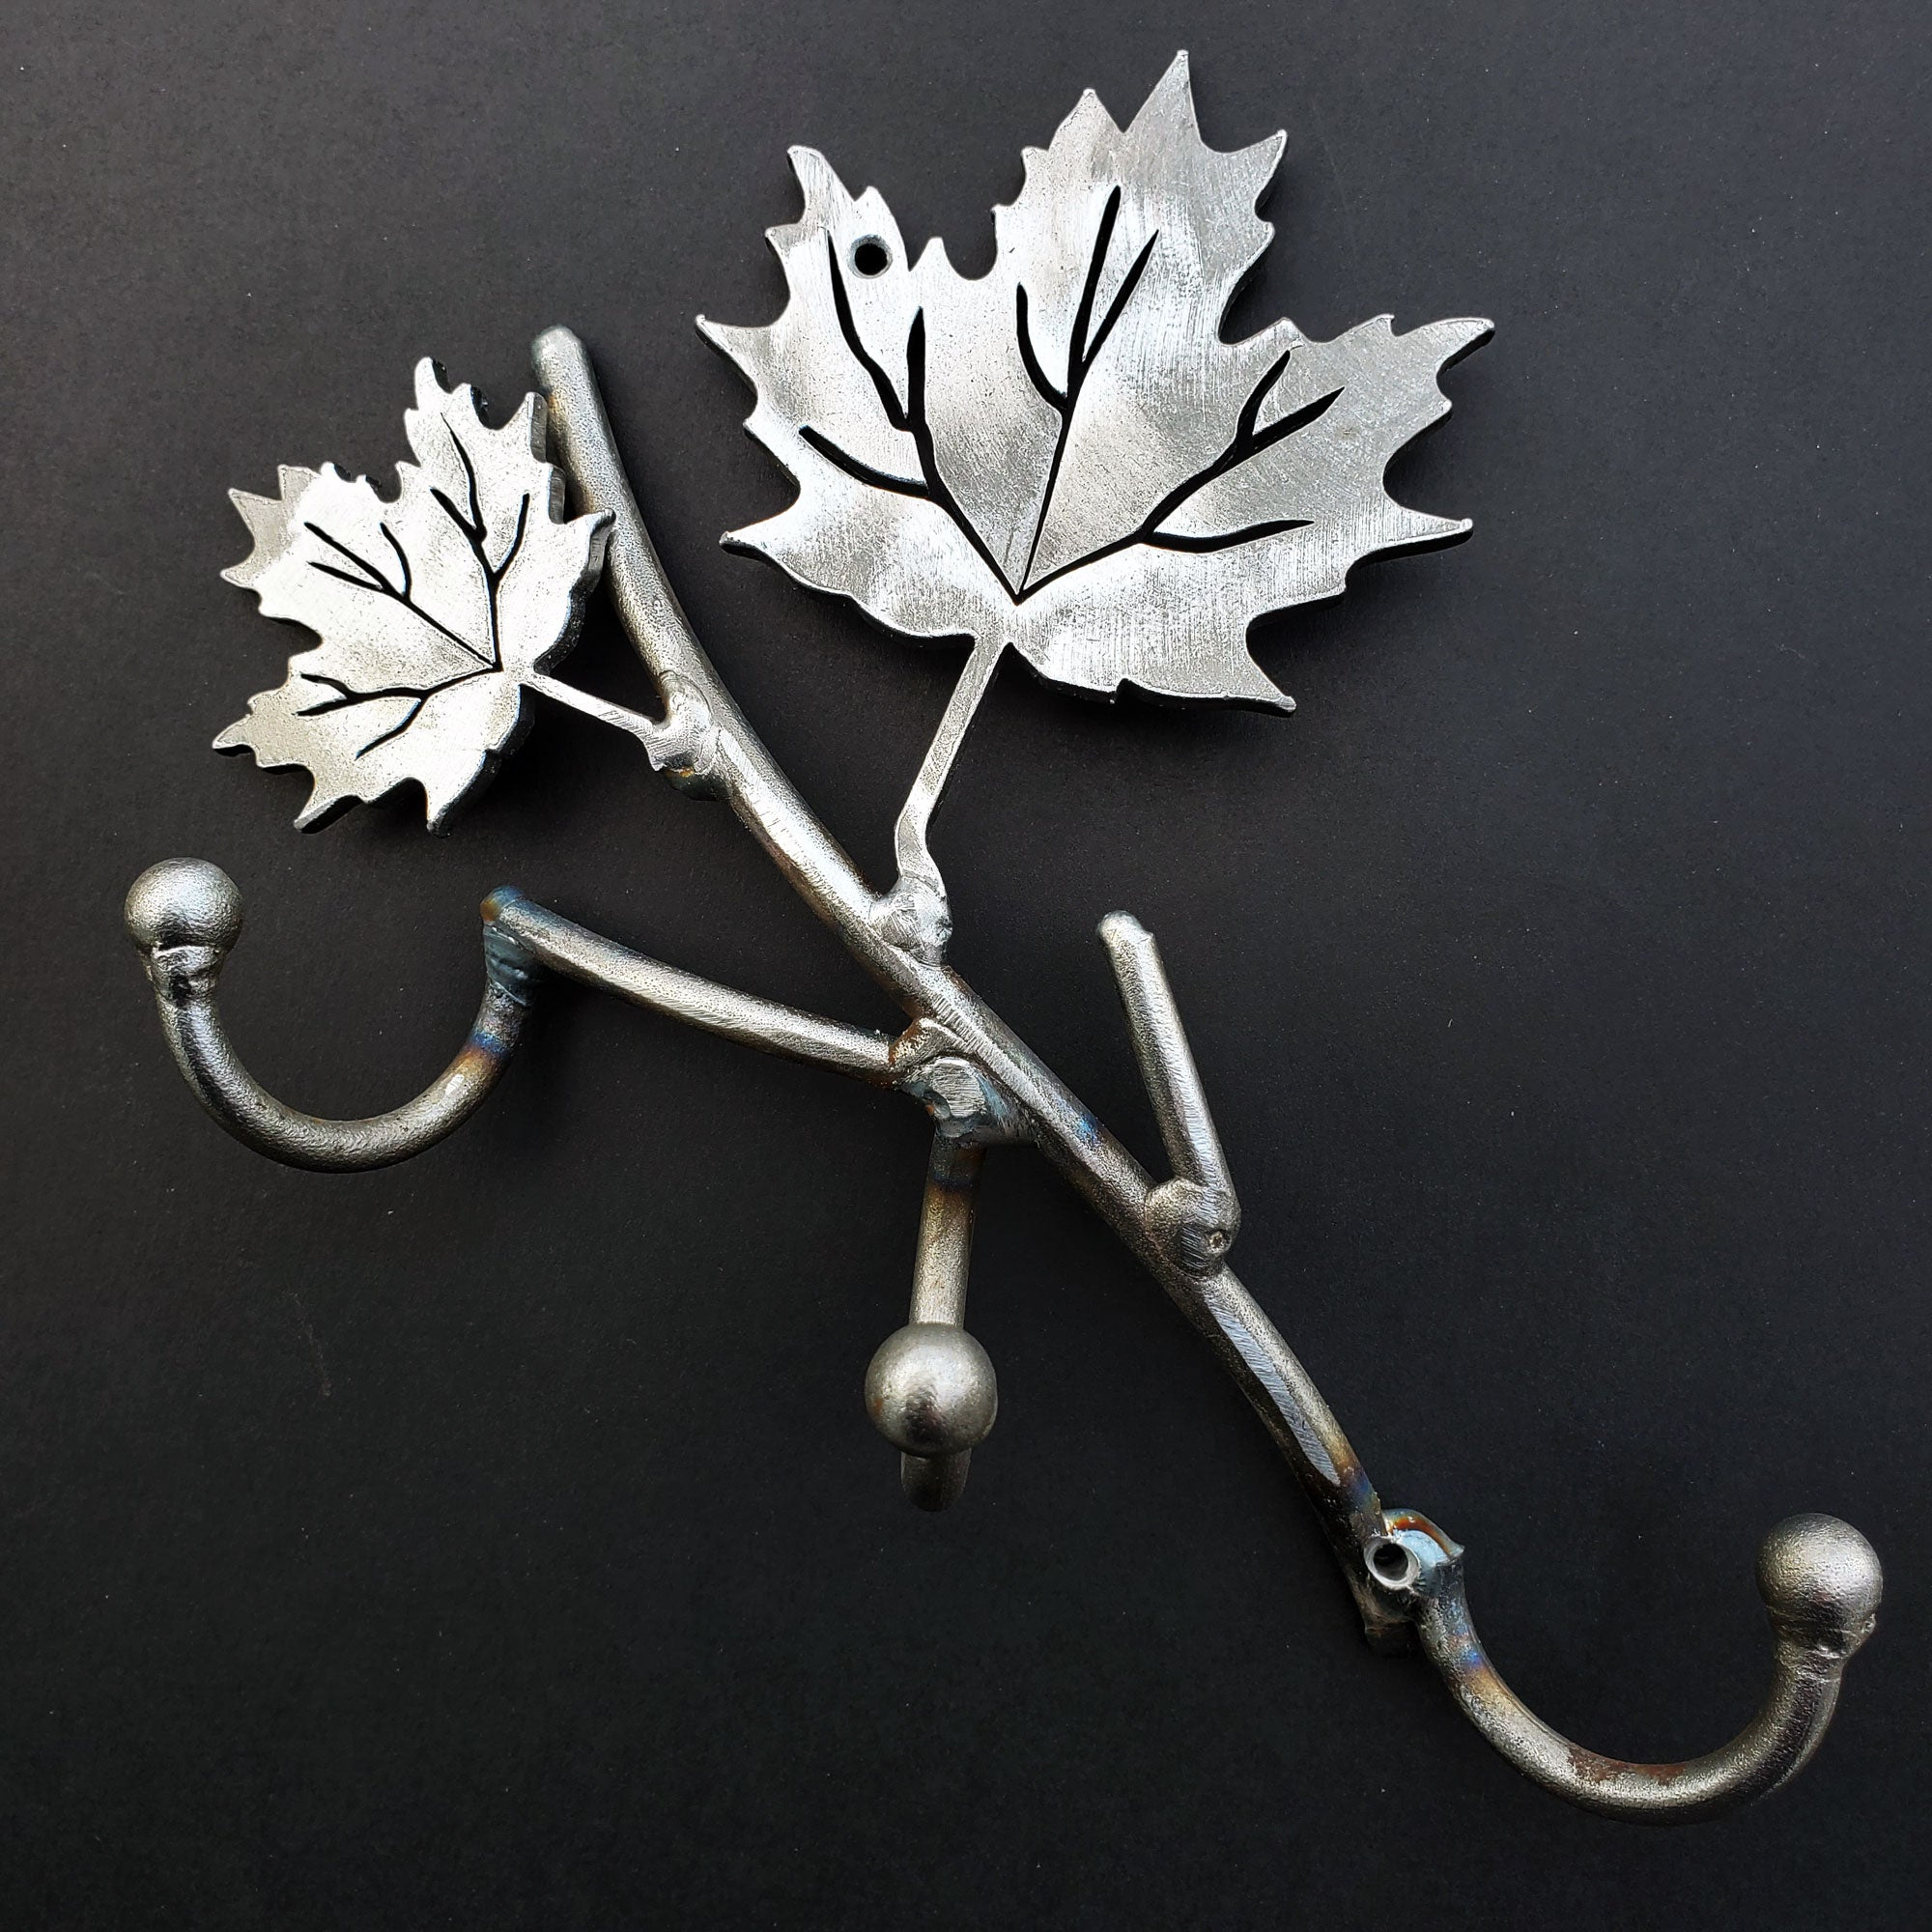 Three Coat Hook Metal Art with Maple Leafs